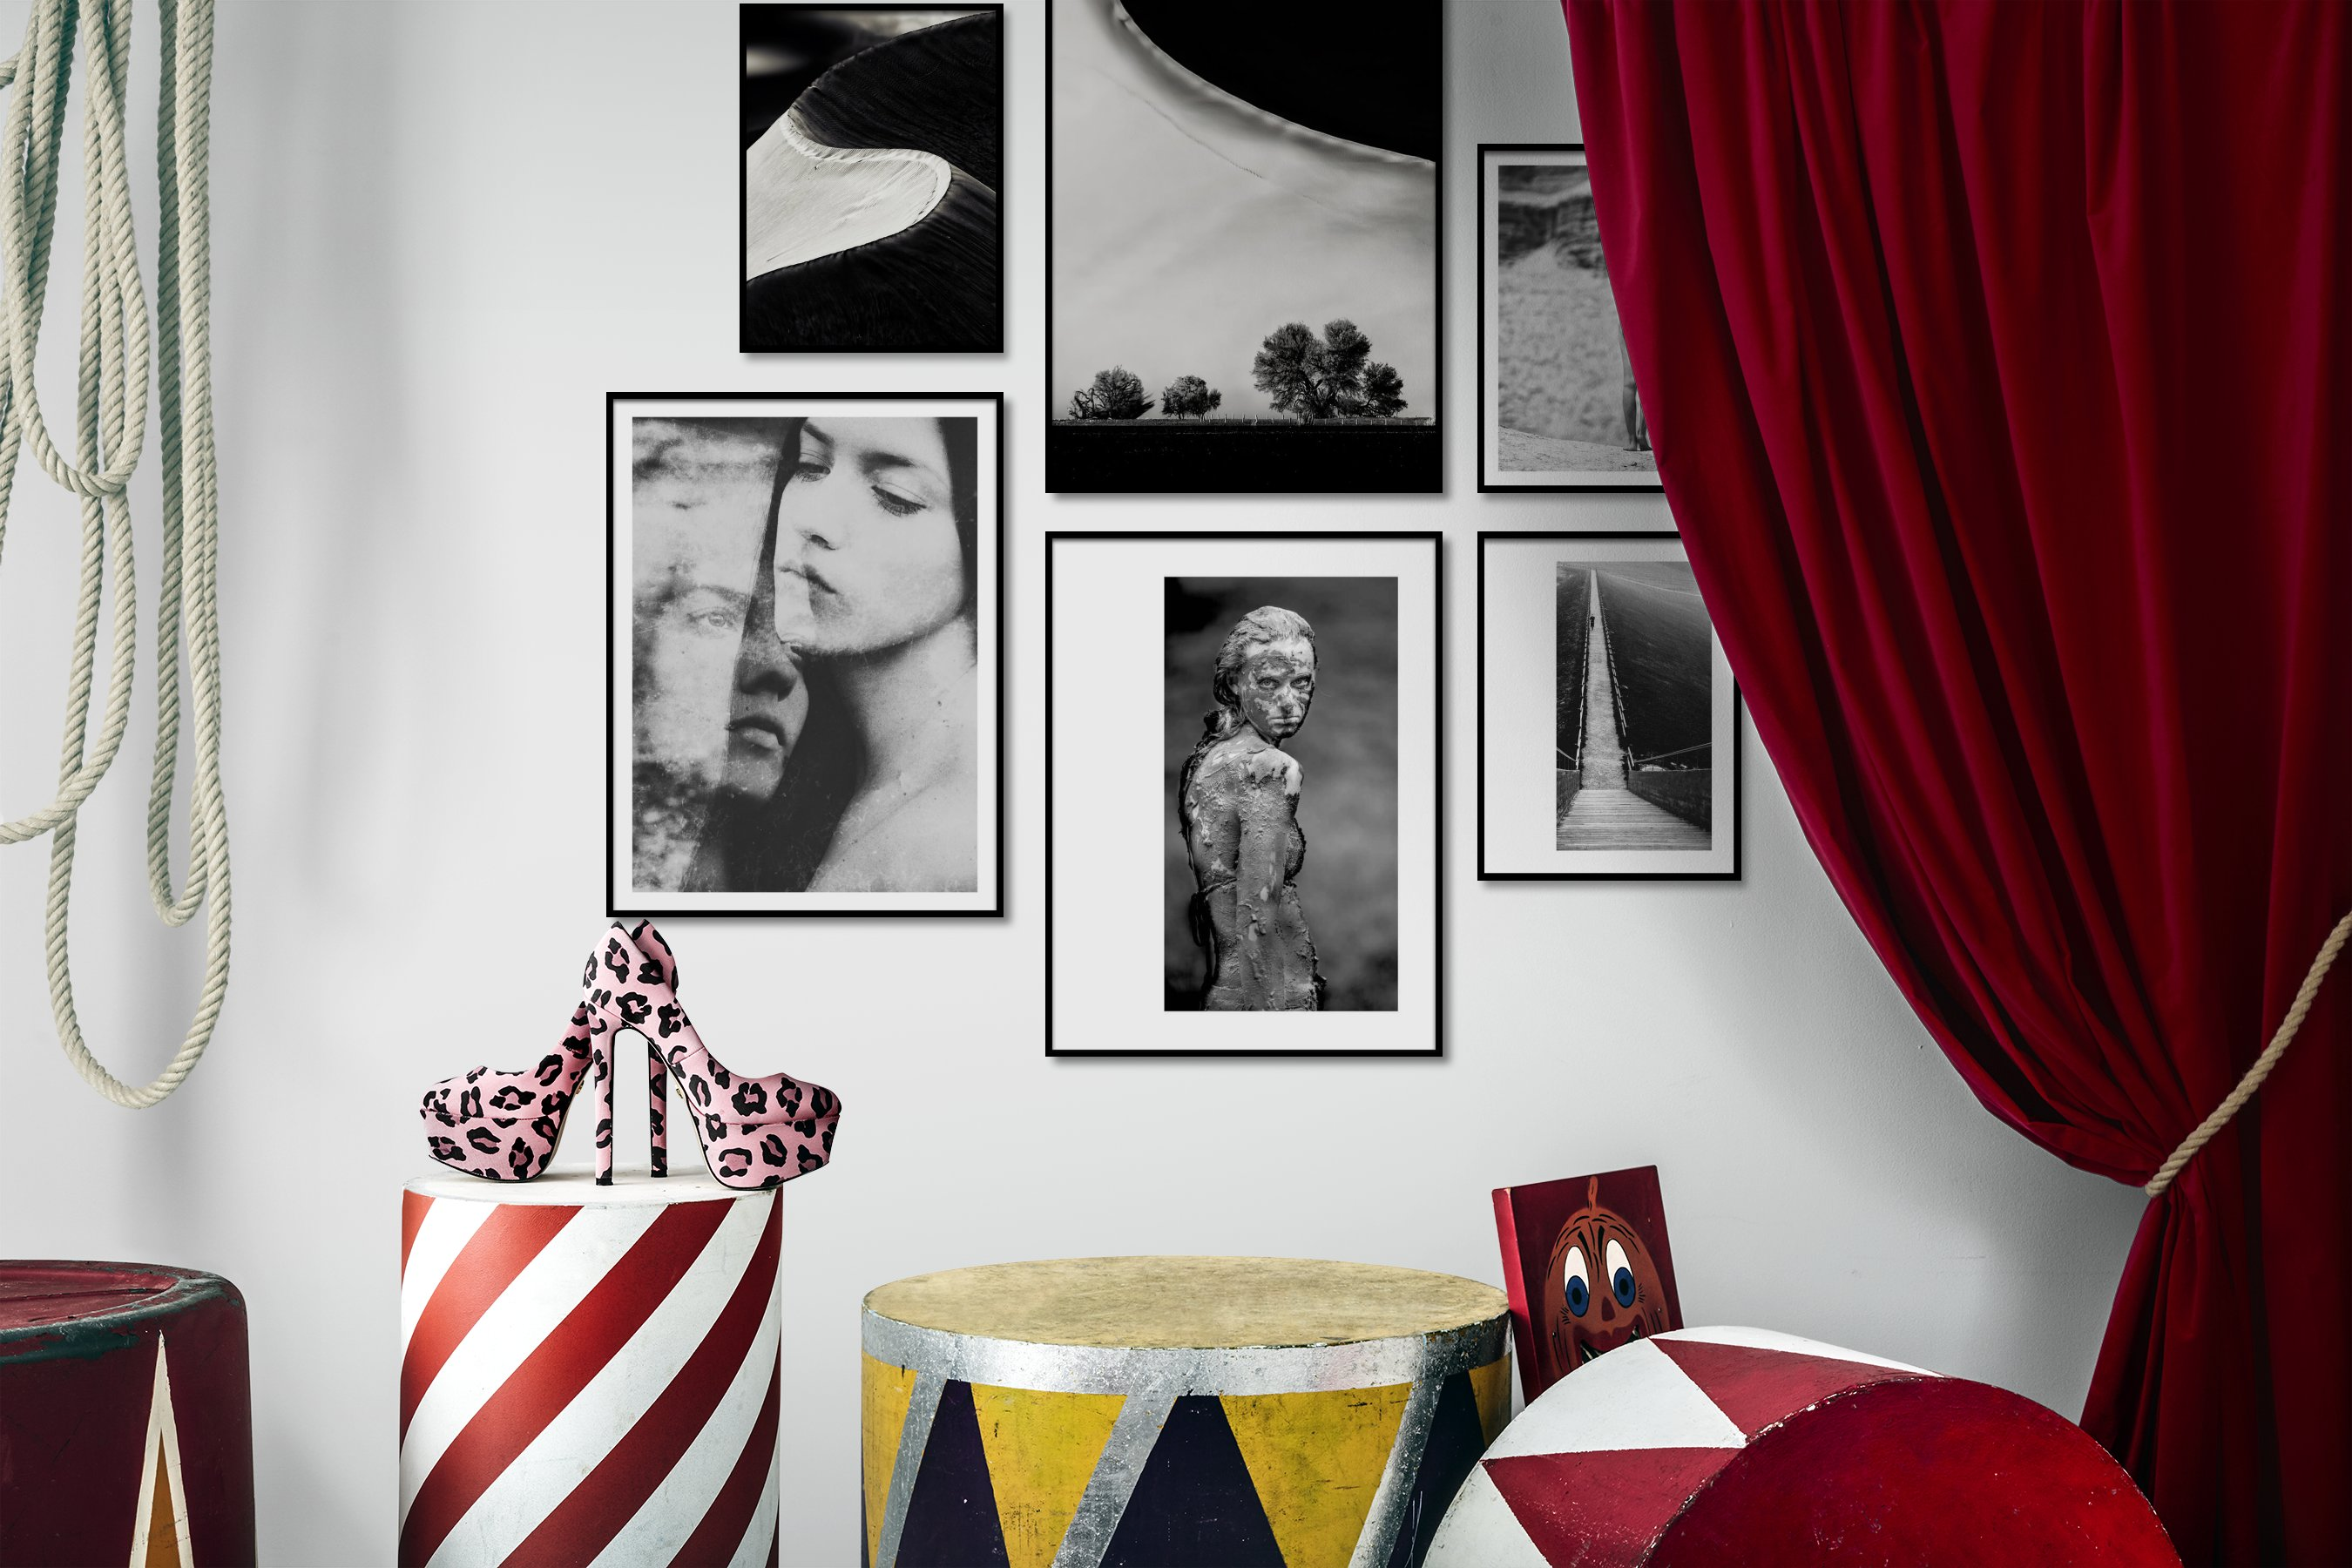 Gallery wall idea with six framed pictures arranged on a wall depicting Black & White, For the Moderate, Nature, Artsy, Fashion & Beauty, Vintage, and Country Life